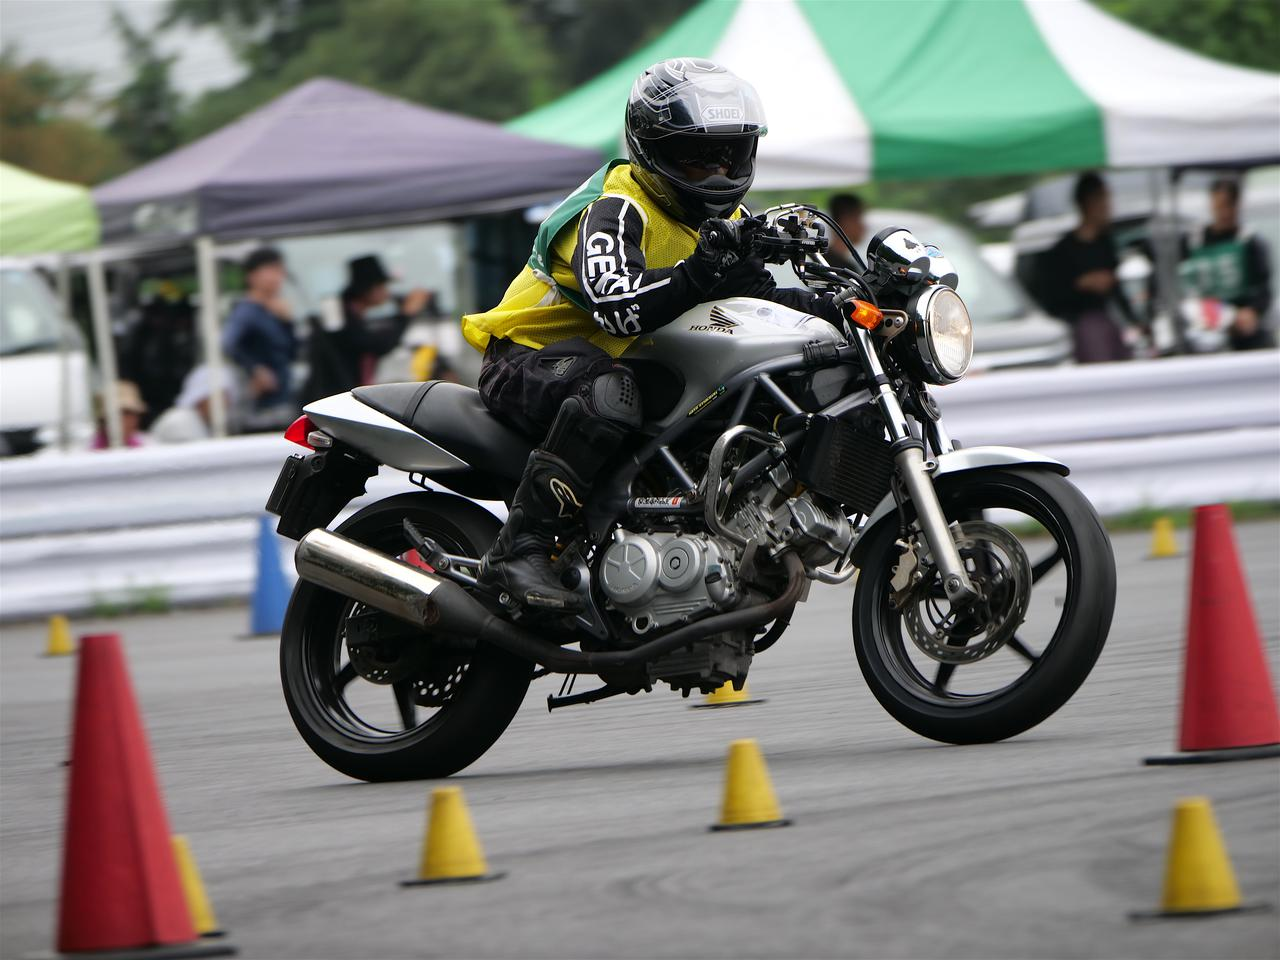 Images : 2番目の画像 - ジムカーナで活躍するホンダ「VTR」をもっと見る! - LAWRENCE - Motorcycle x Cars + α = Your Life.